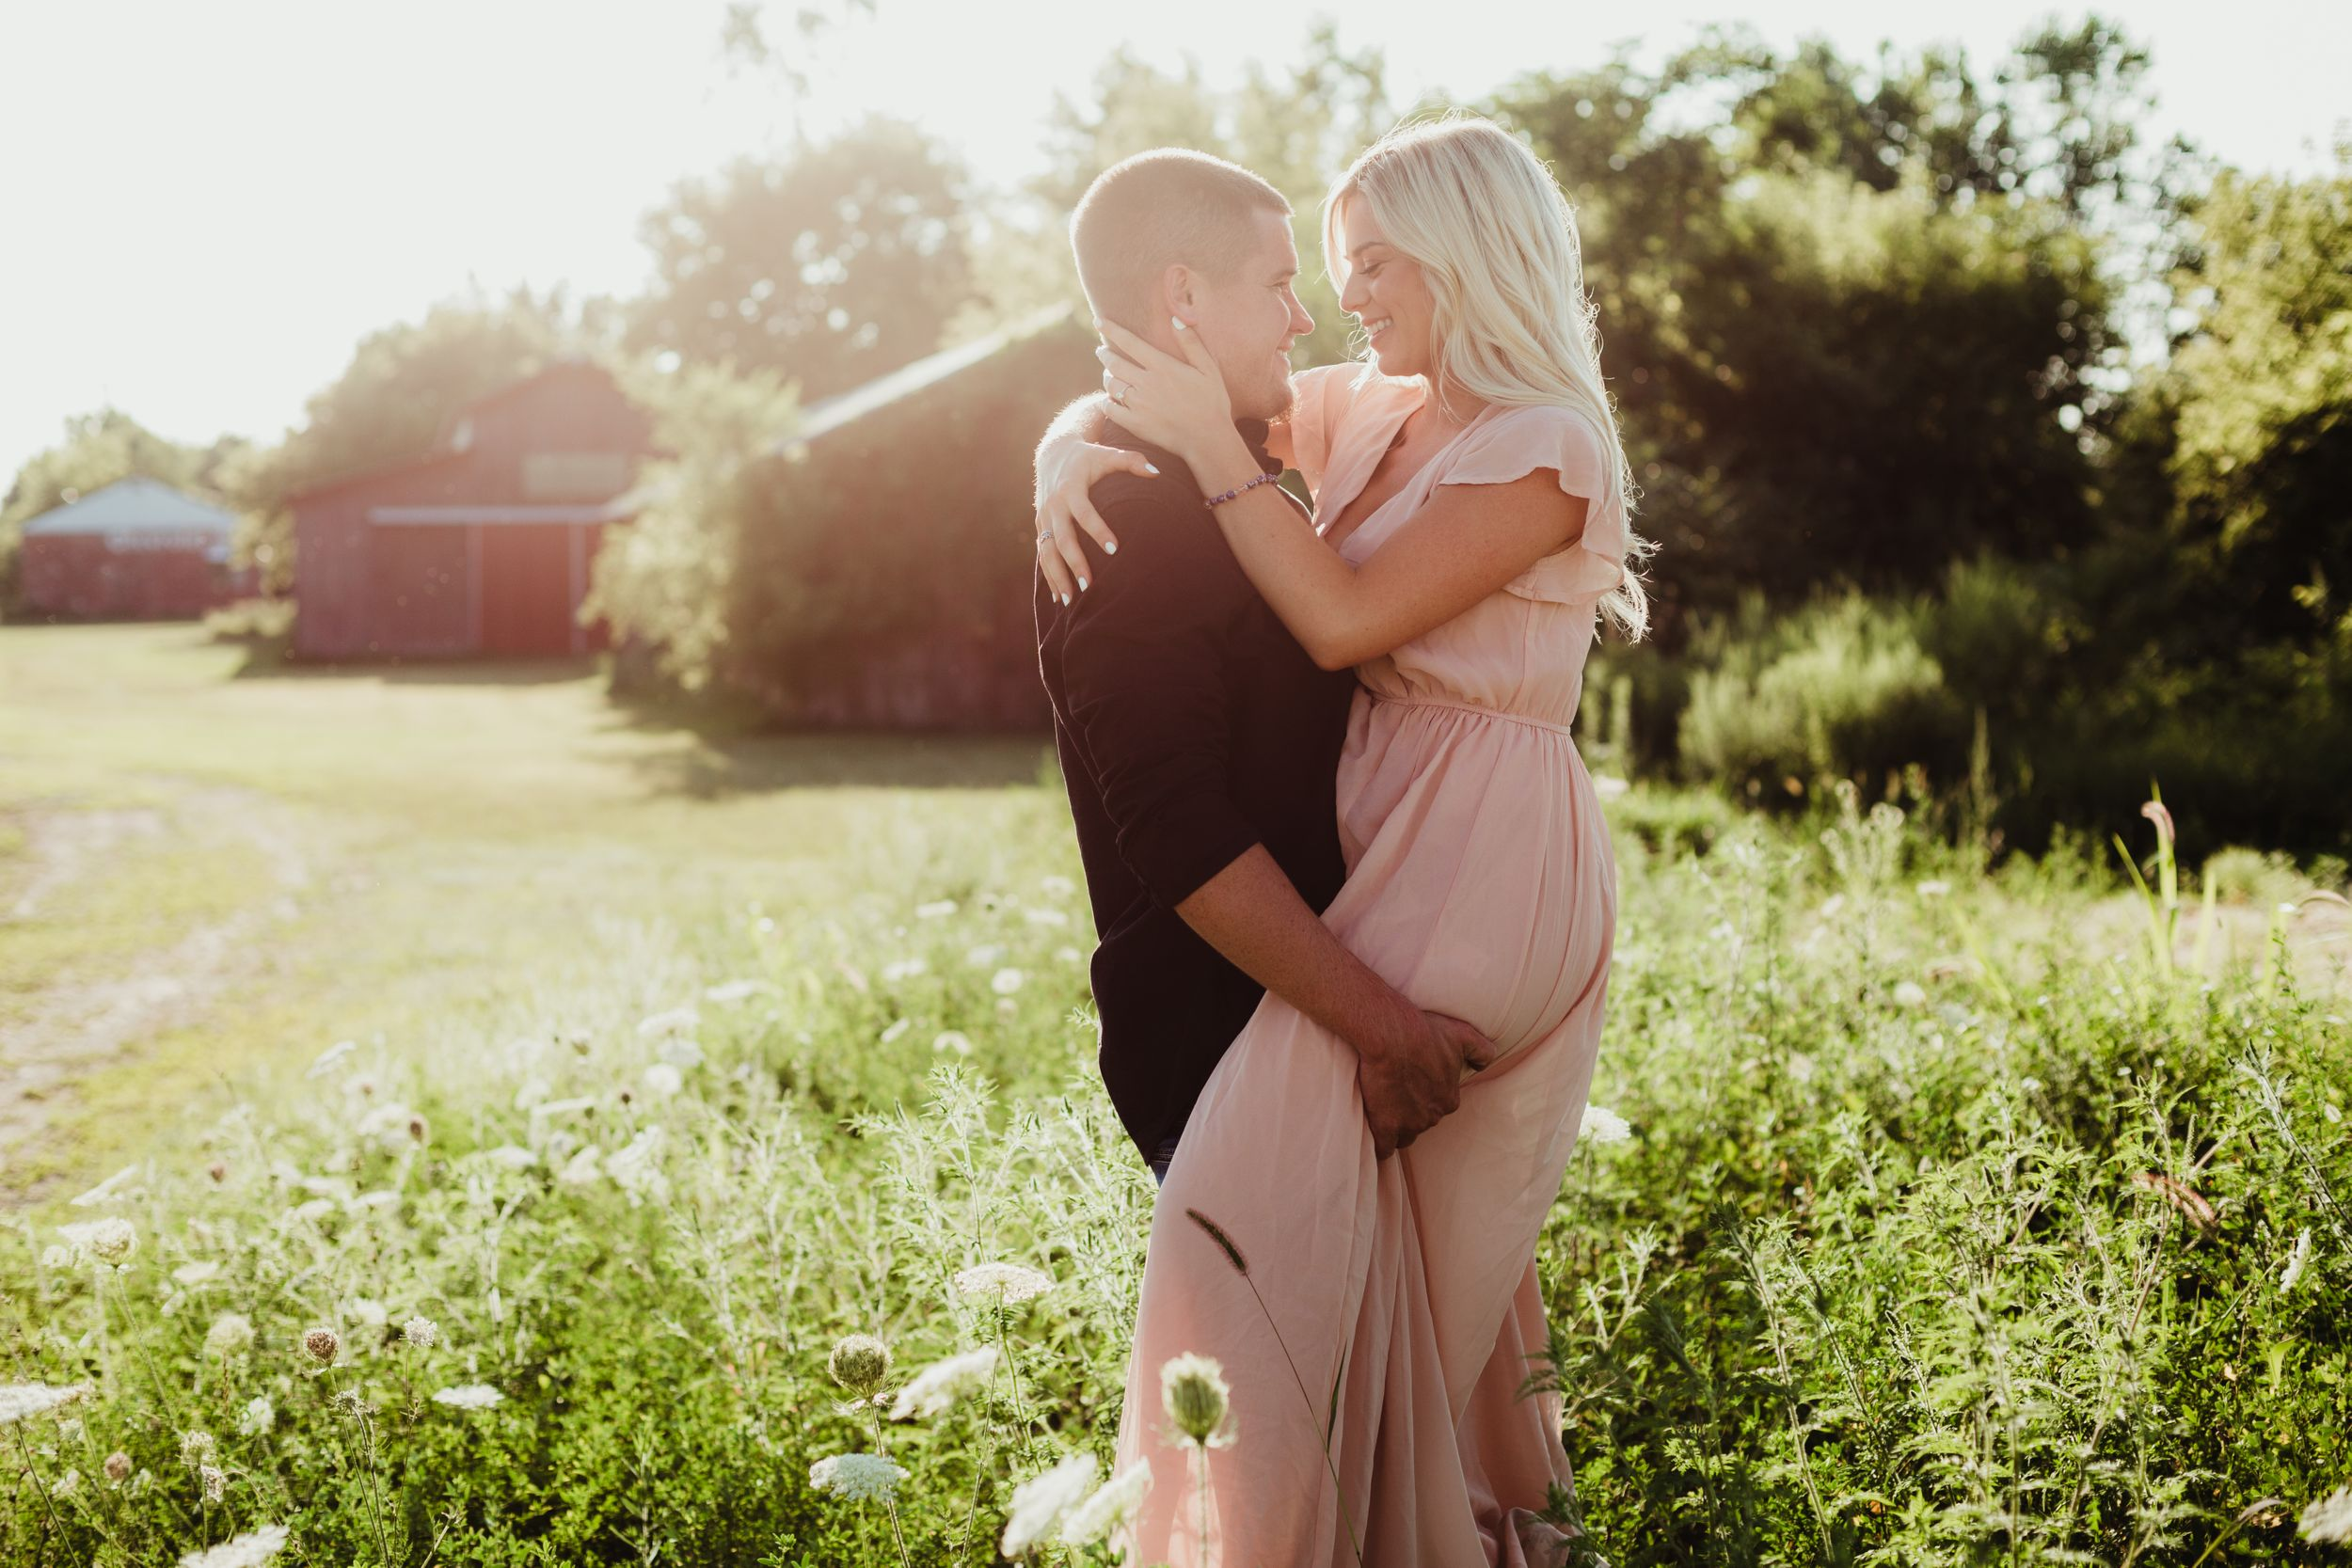 A man holding his fiance. She is wearing a long light pink dress. They are smiling at each other.